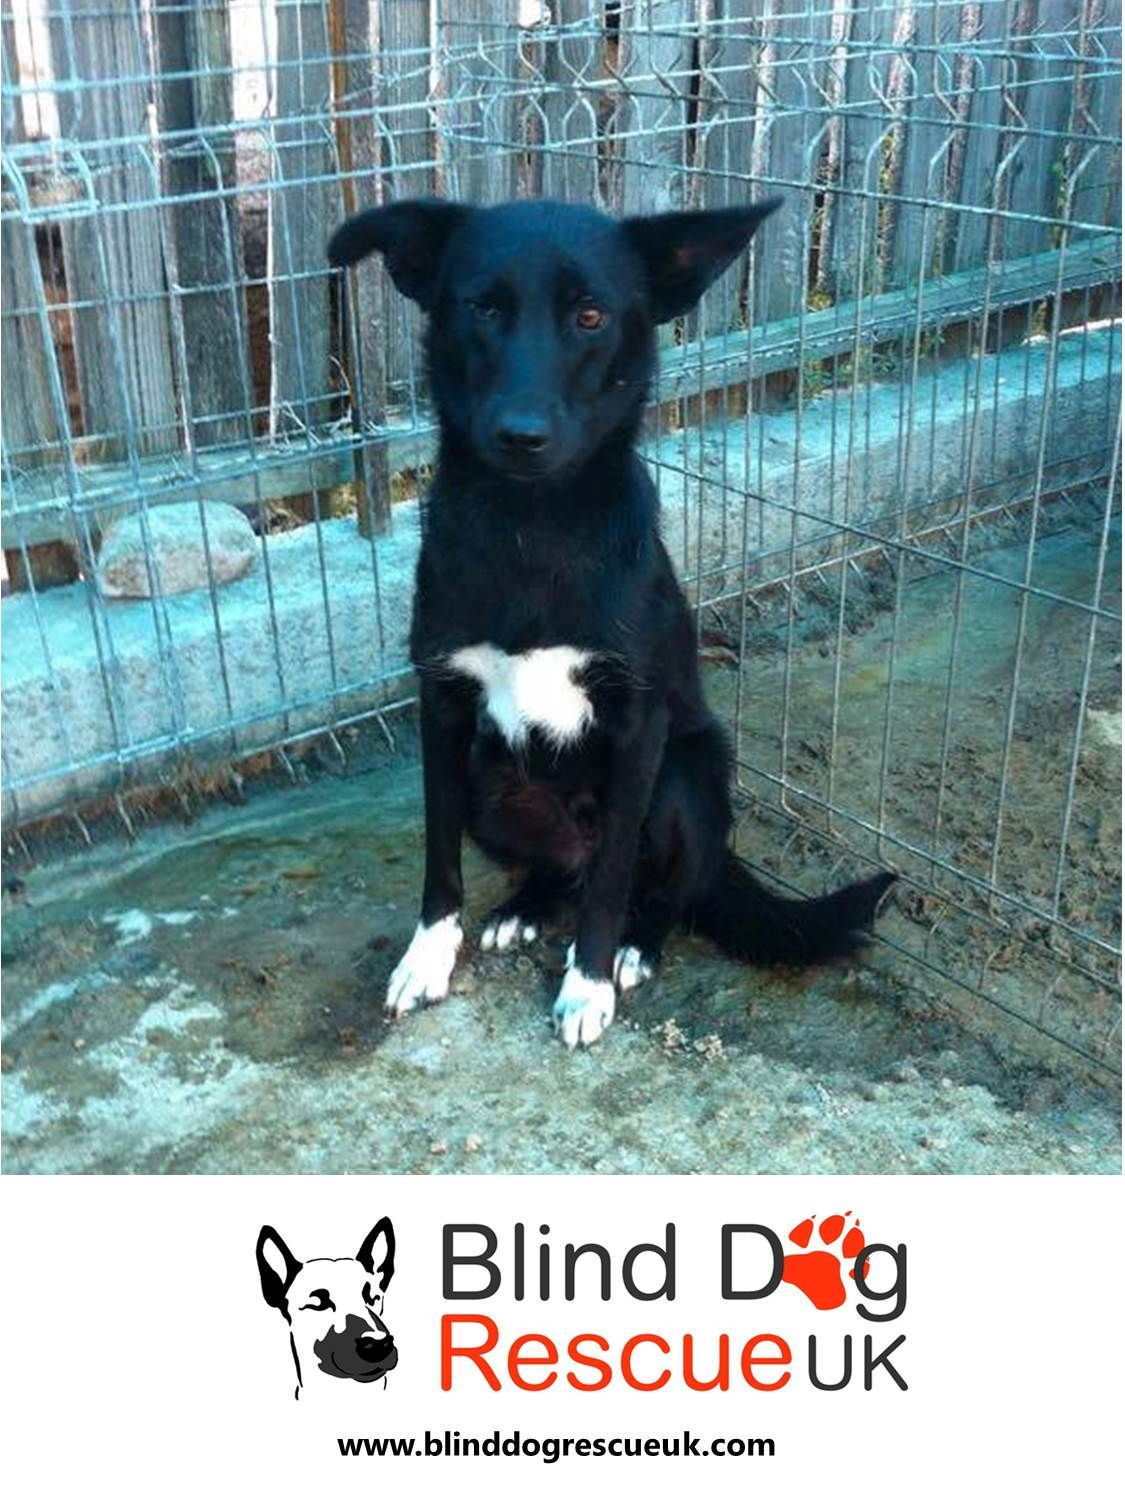 Dumbo Sat Patiently Waiting For A New Home Dumbo Is One Year Old He Is A Little Shy At First But Is Friendly And Real Dog Rescue Uk Blind Dog Dog